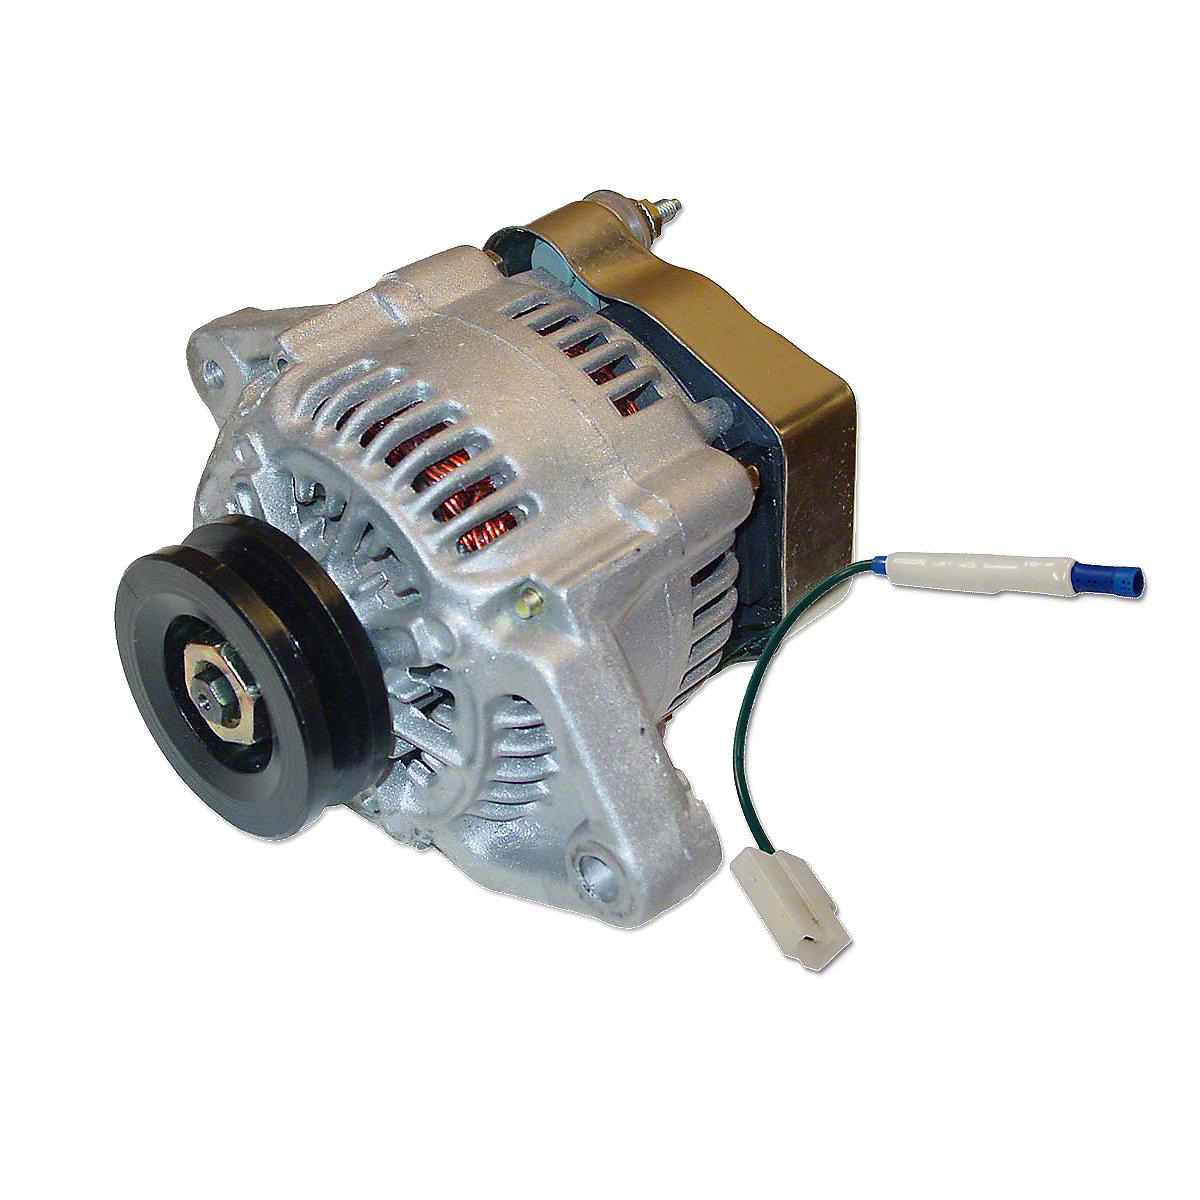 ABC535Mini 41 Max Amp 12 Volt  Alternator With Pulley And Diode